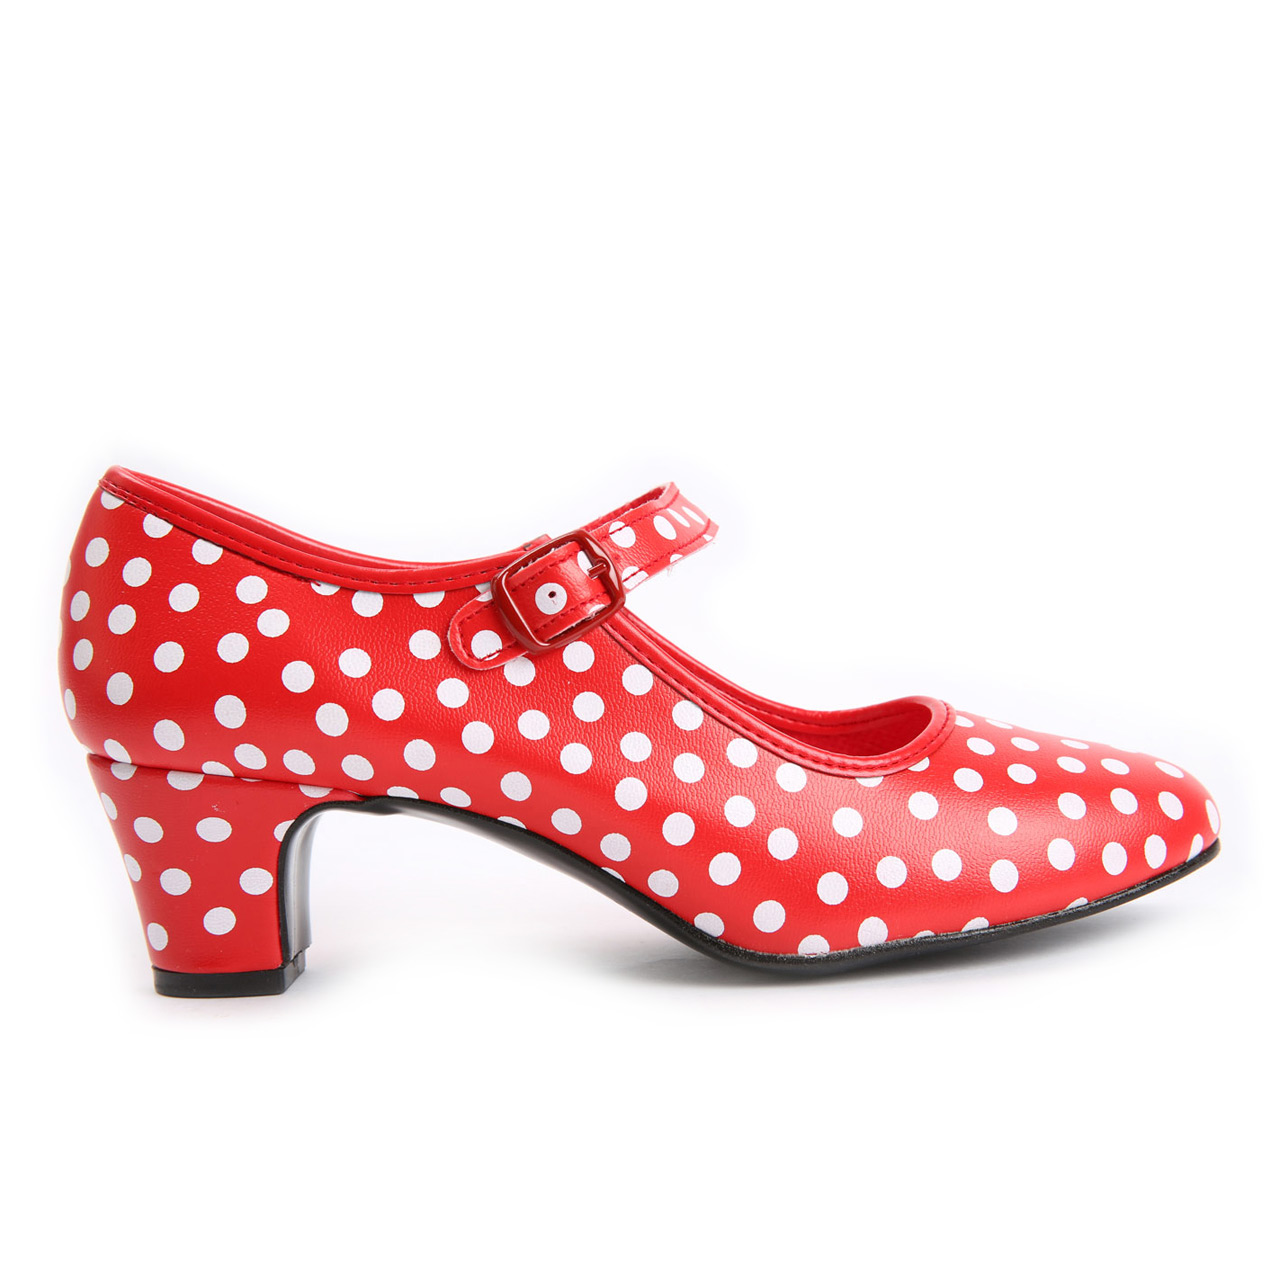 Flamenco Dance Shoe Polka Dots